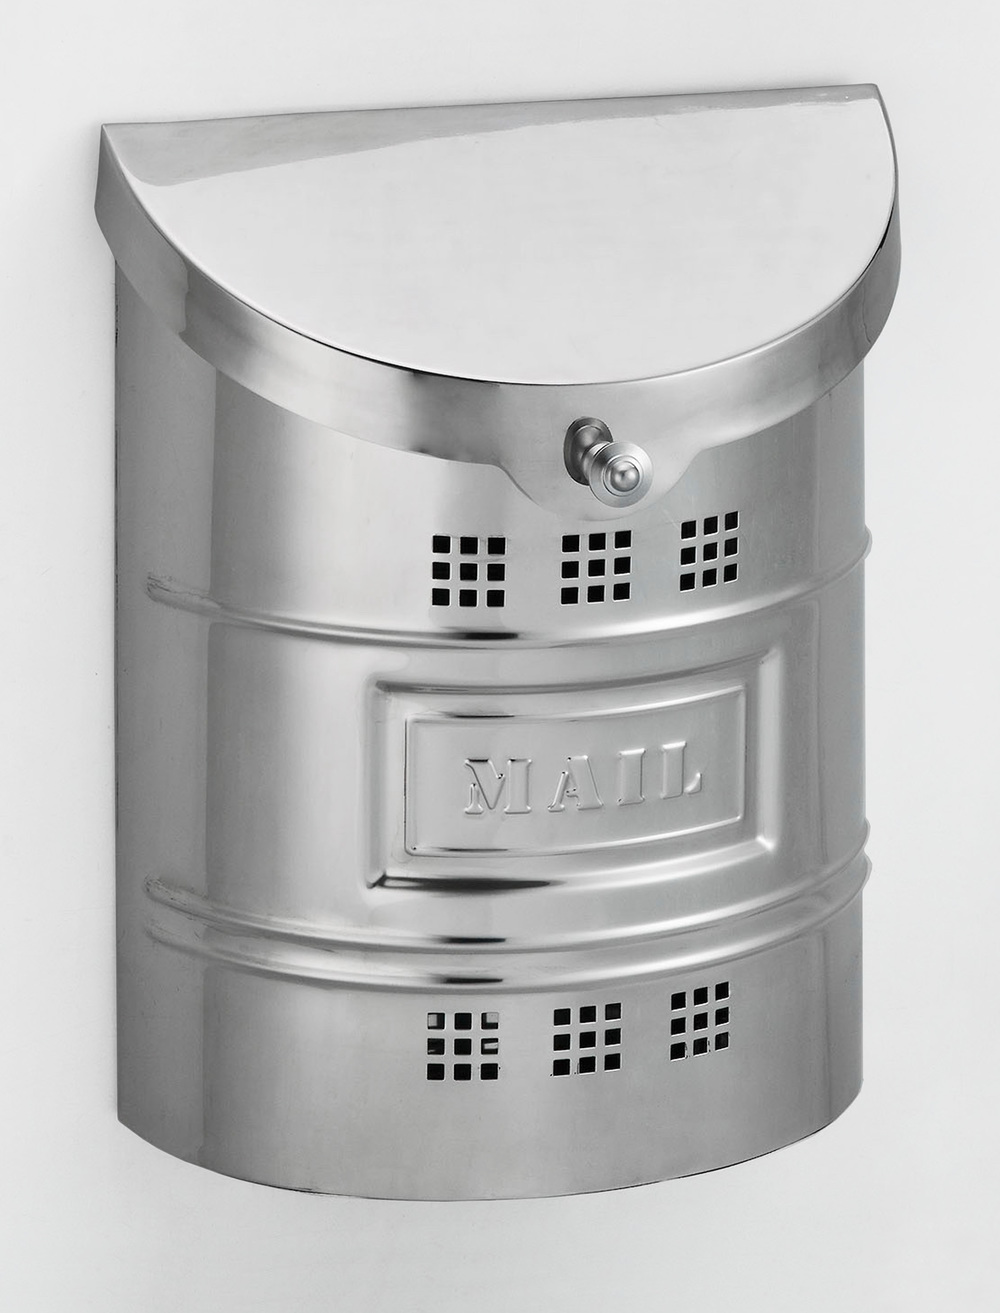 212E2M Barrel drum cut out ecco mailbox. Size: 11.25 W 14.5 H 4.5 D. Hardware included. Shown in polished stainless steel.  Smaller size available.